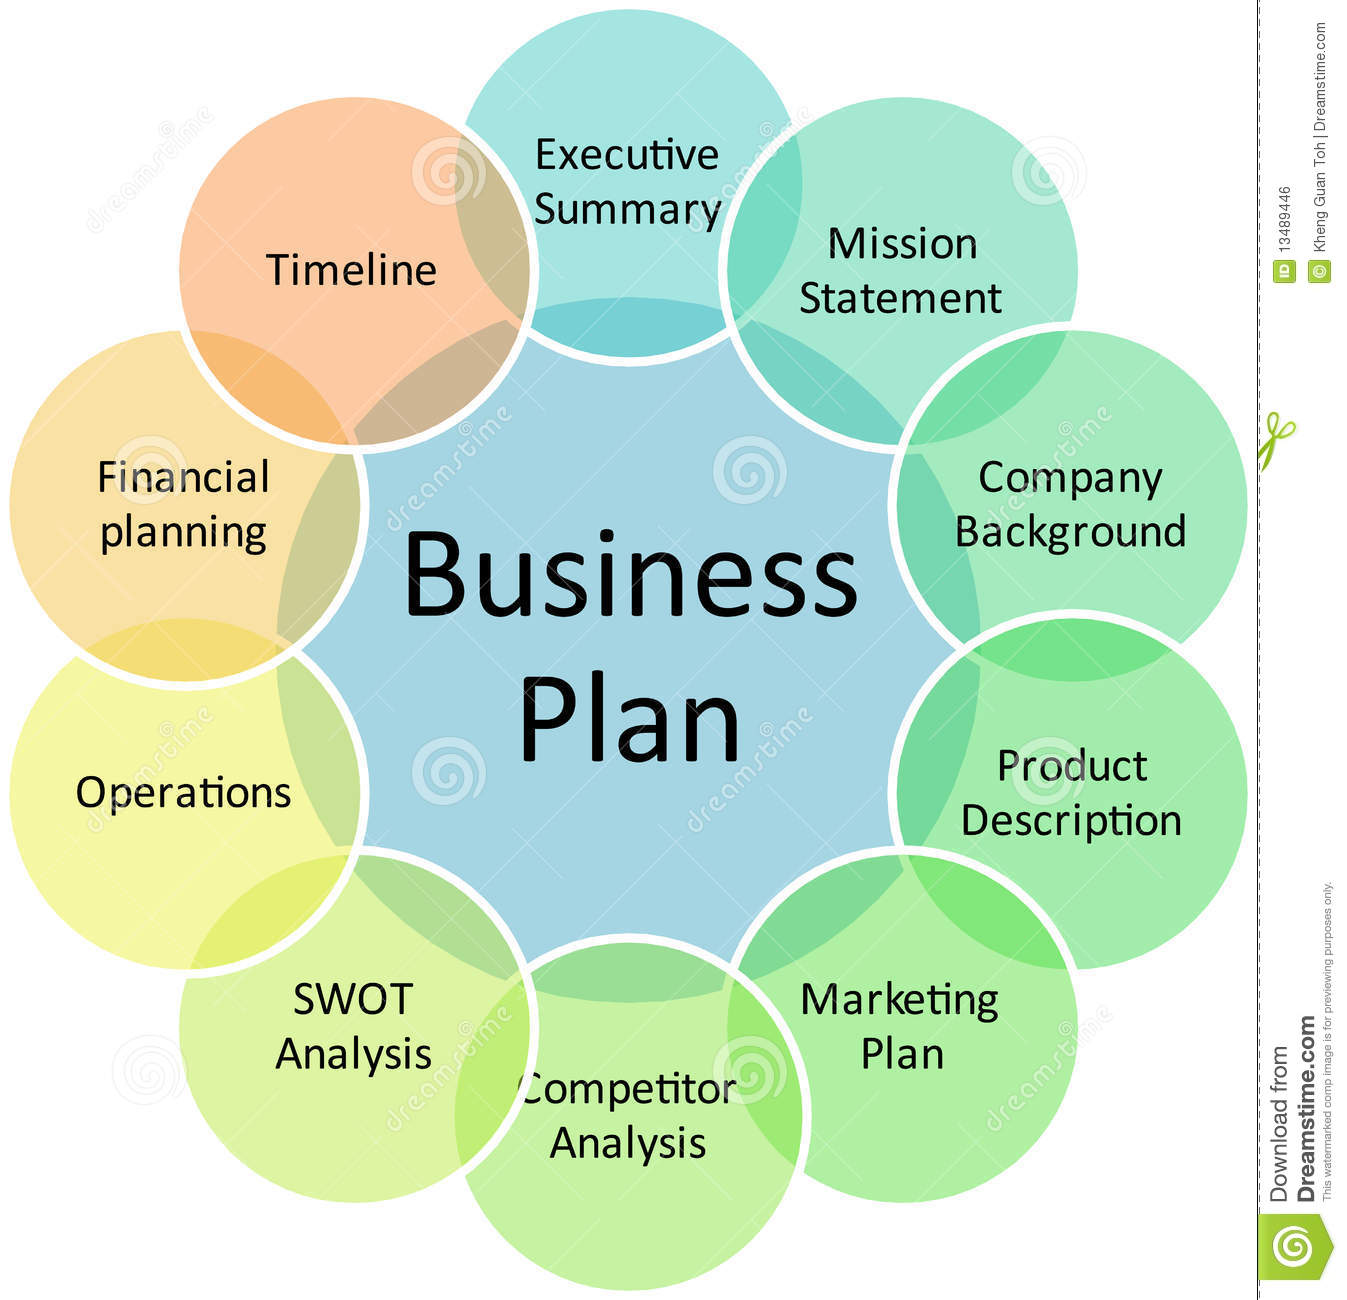 hight resolution of business plan management components strategy concept diagram illustration